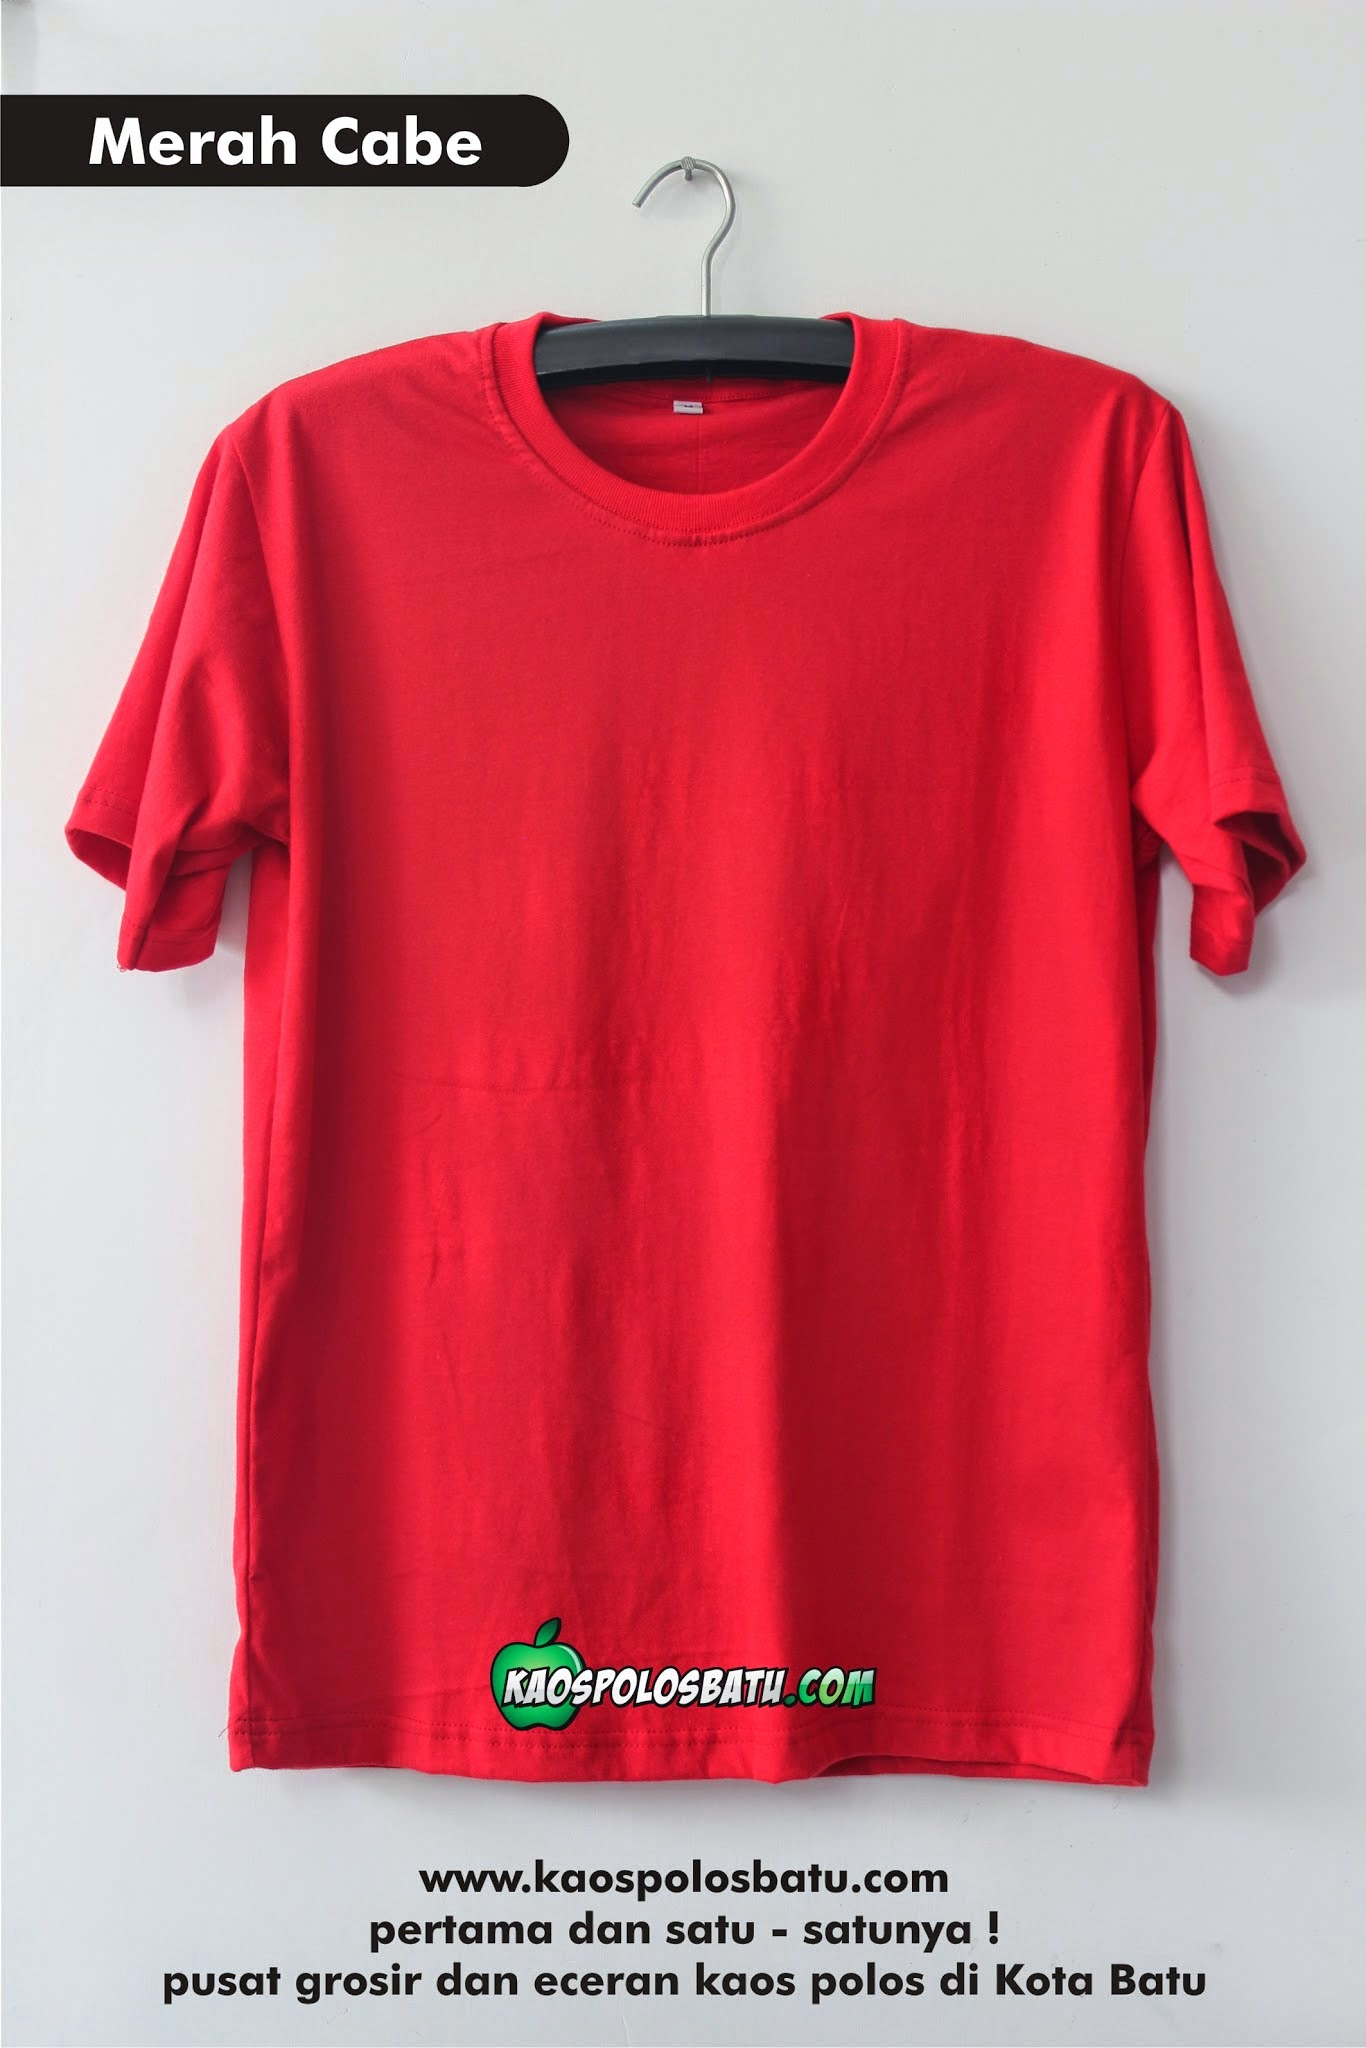 Album Google Kaos Polos Red Misty Photo Batu Merah Cabe